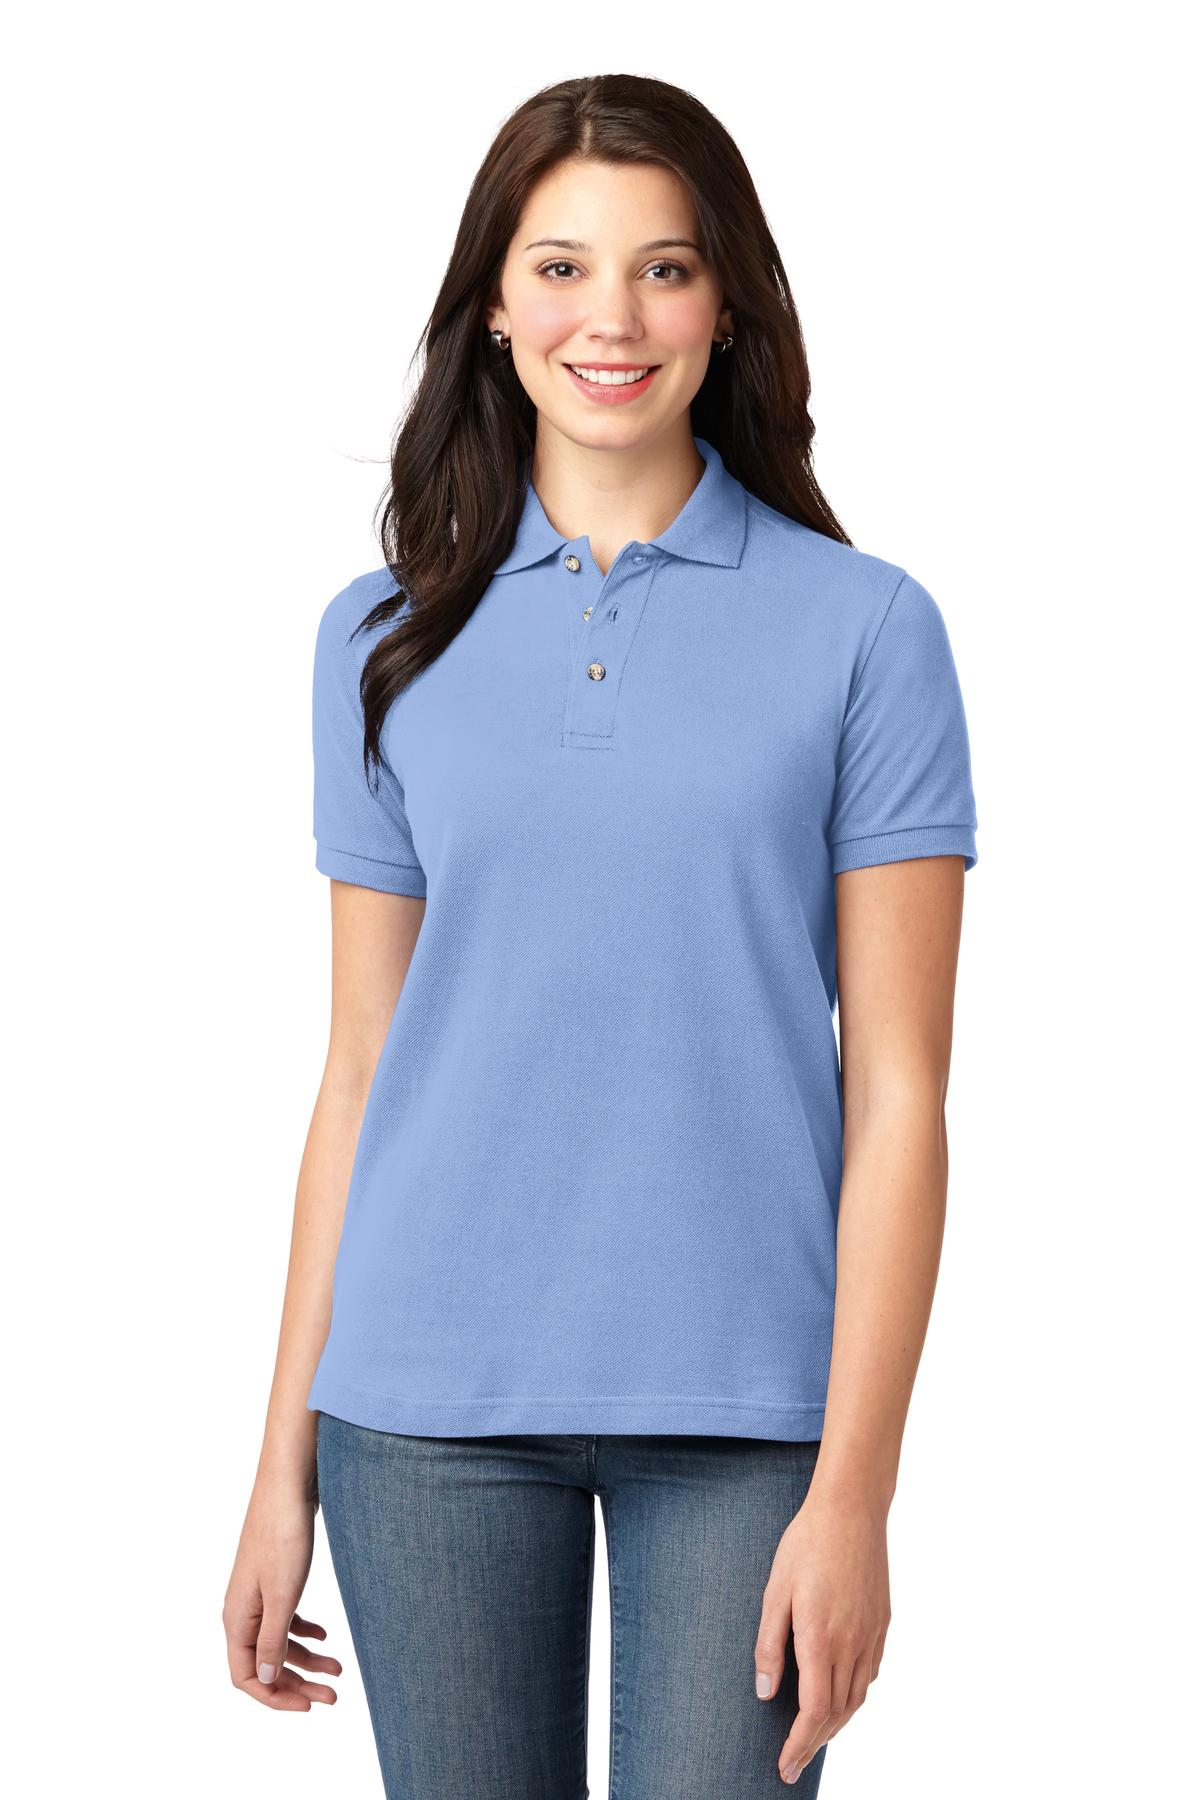 Mint Green Port Authority Ladies Silk Touch Polo.